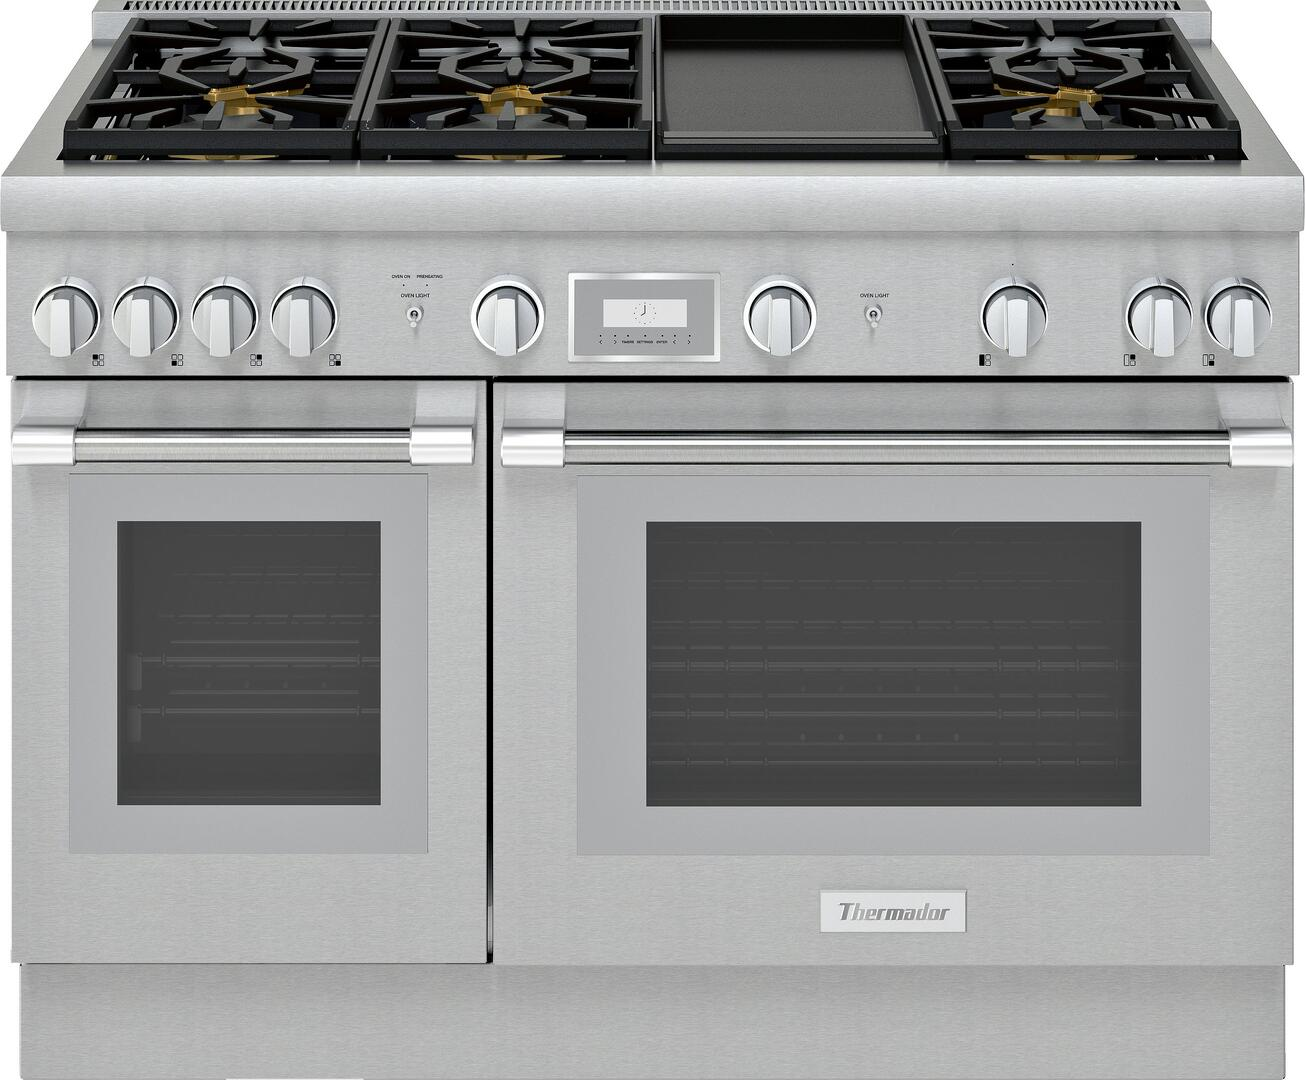 hight resolution of thermador pro harmony prg486wdh 48 inch standard depth gas range